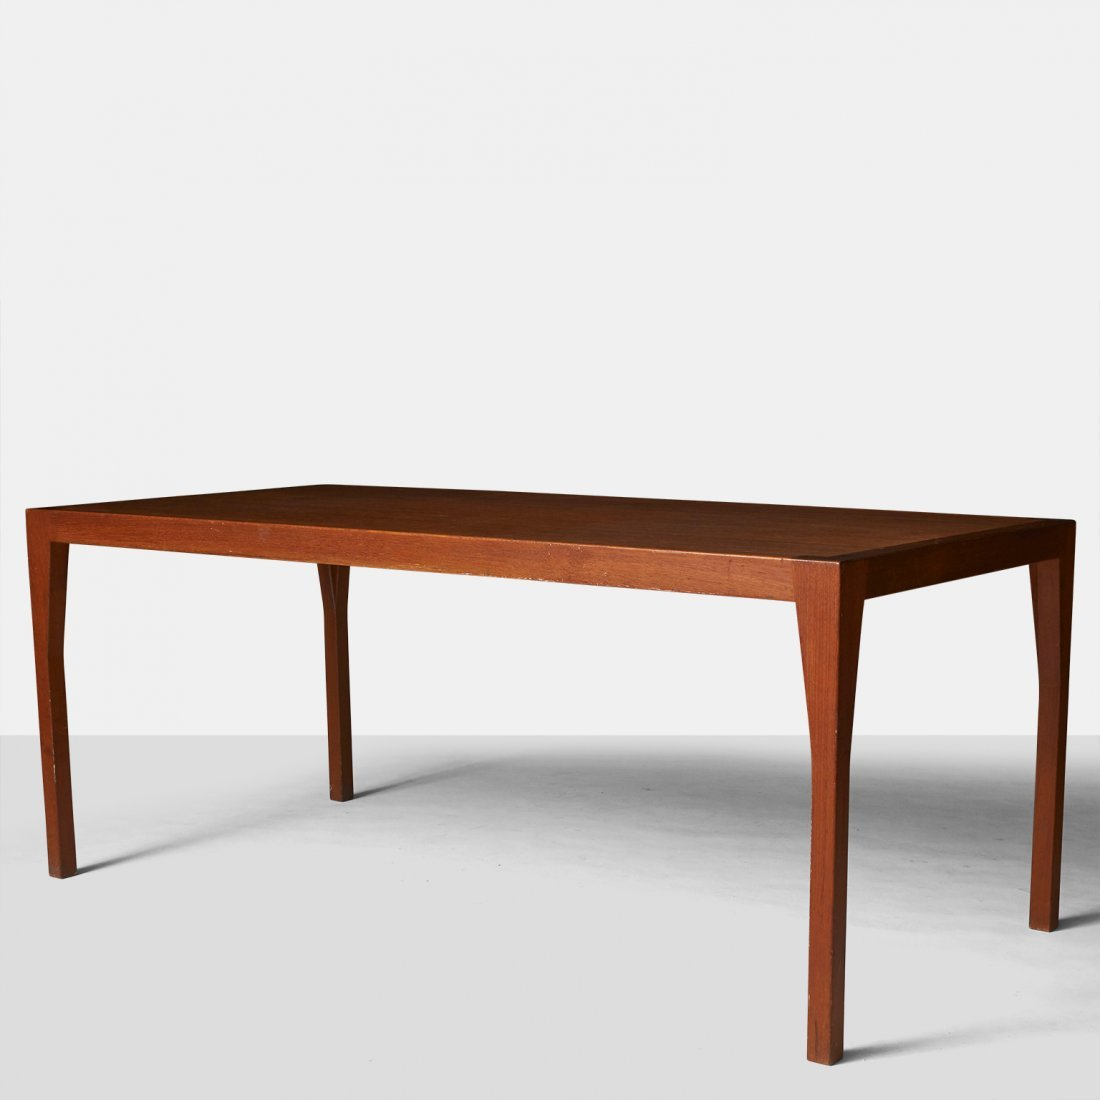 Hans J Wegner, Dining Table